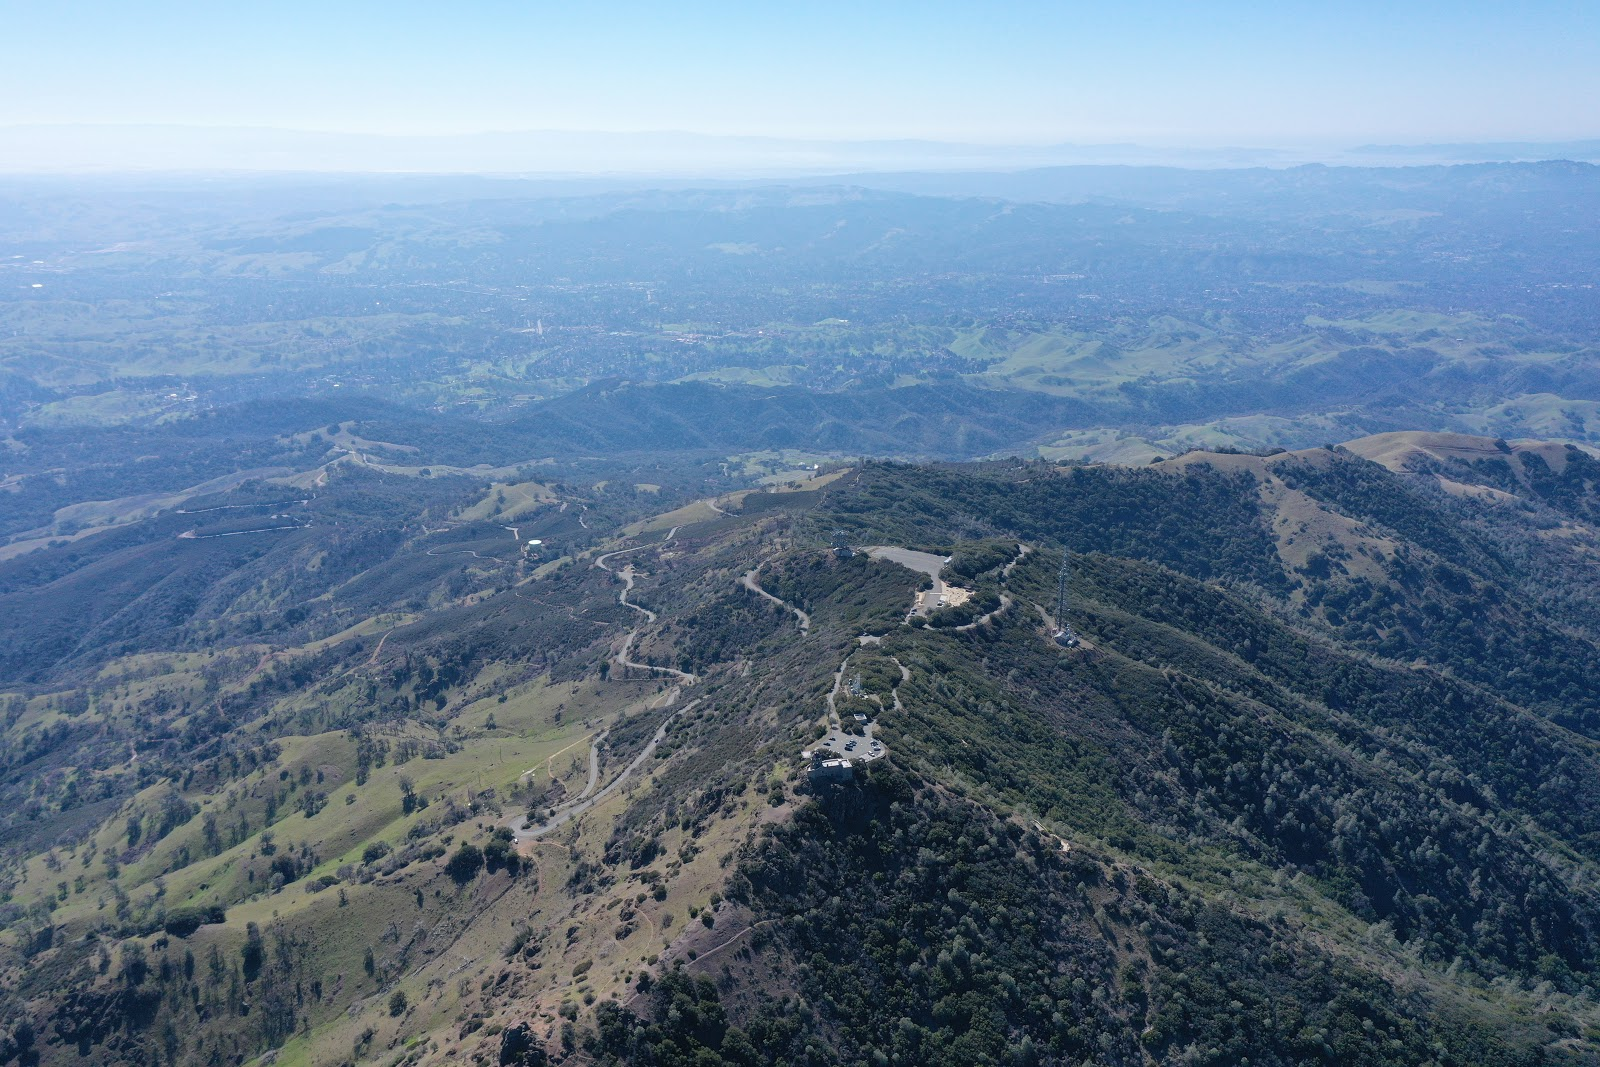 Bicycle ride and climb Mt. Diablo - Summit Road, Visitor Center, Beacon - aerial drone photo